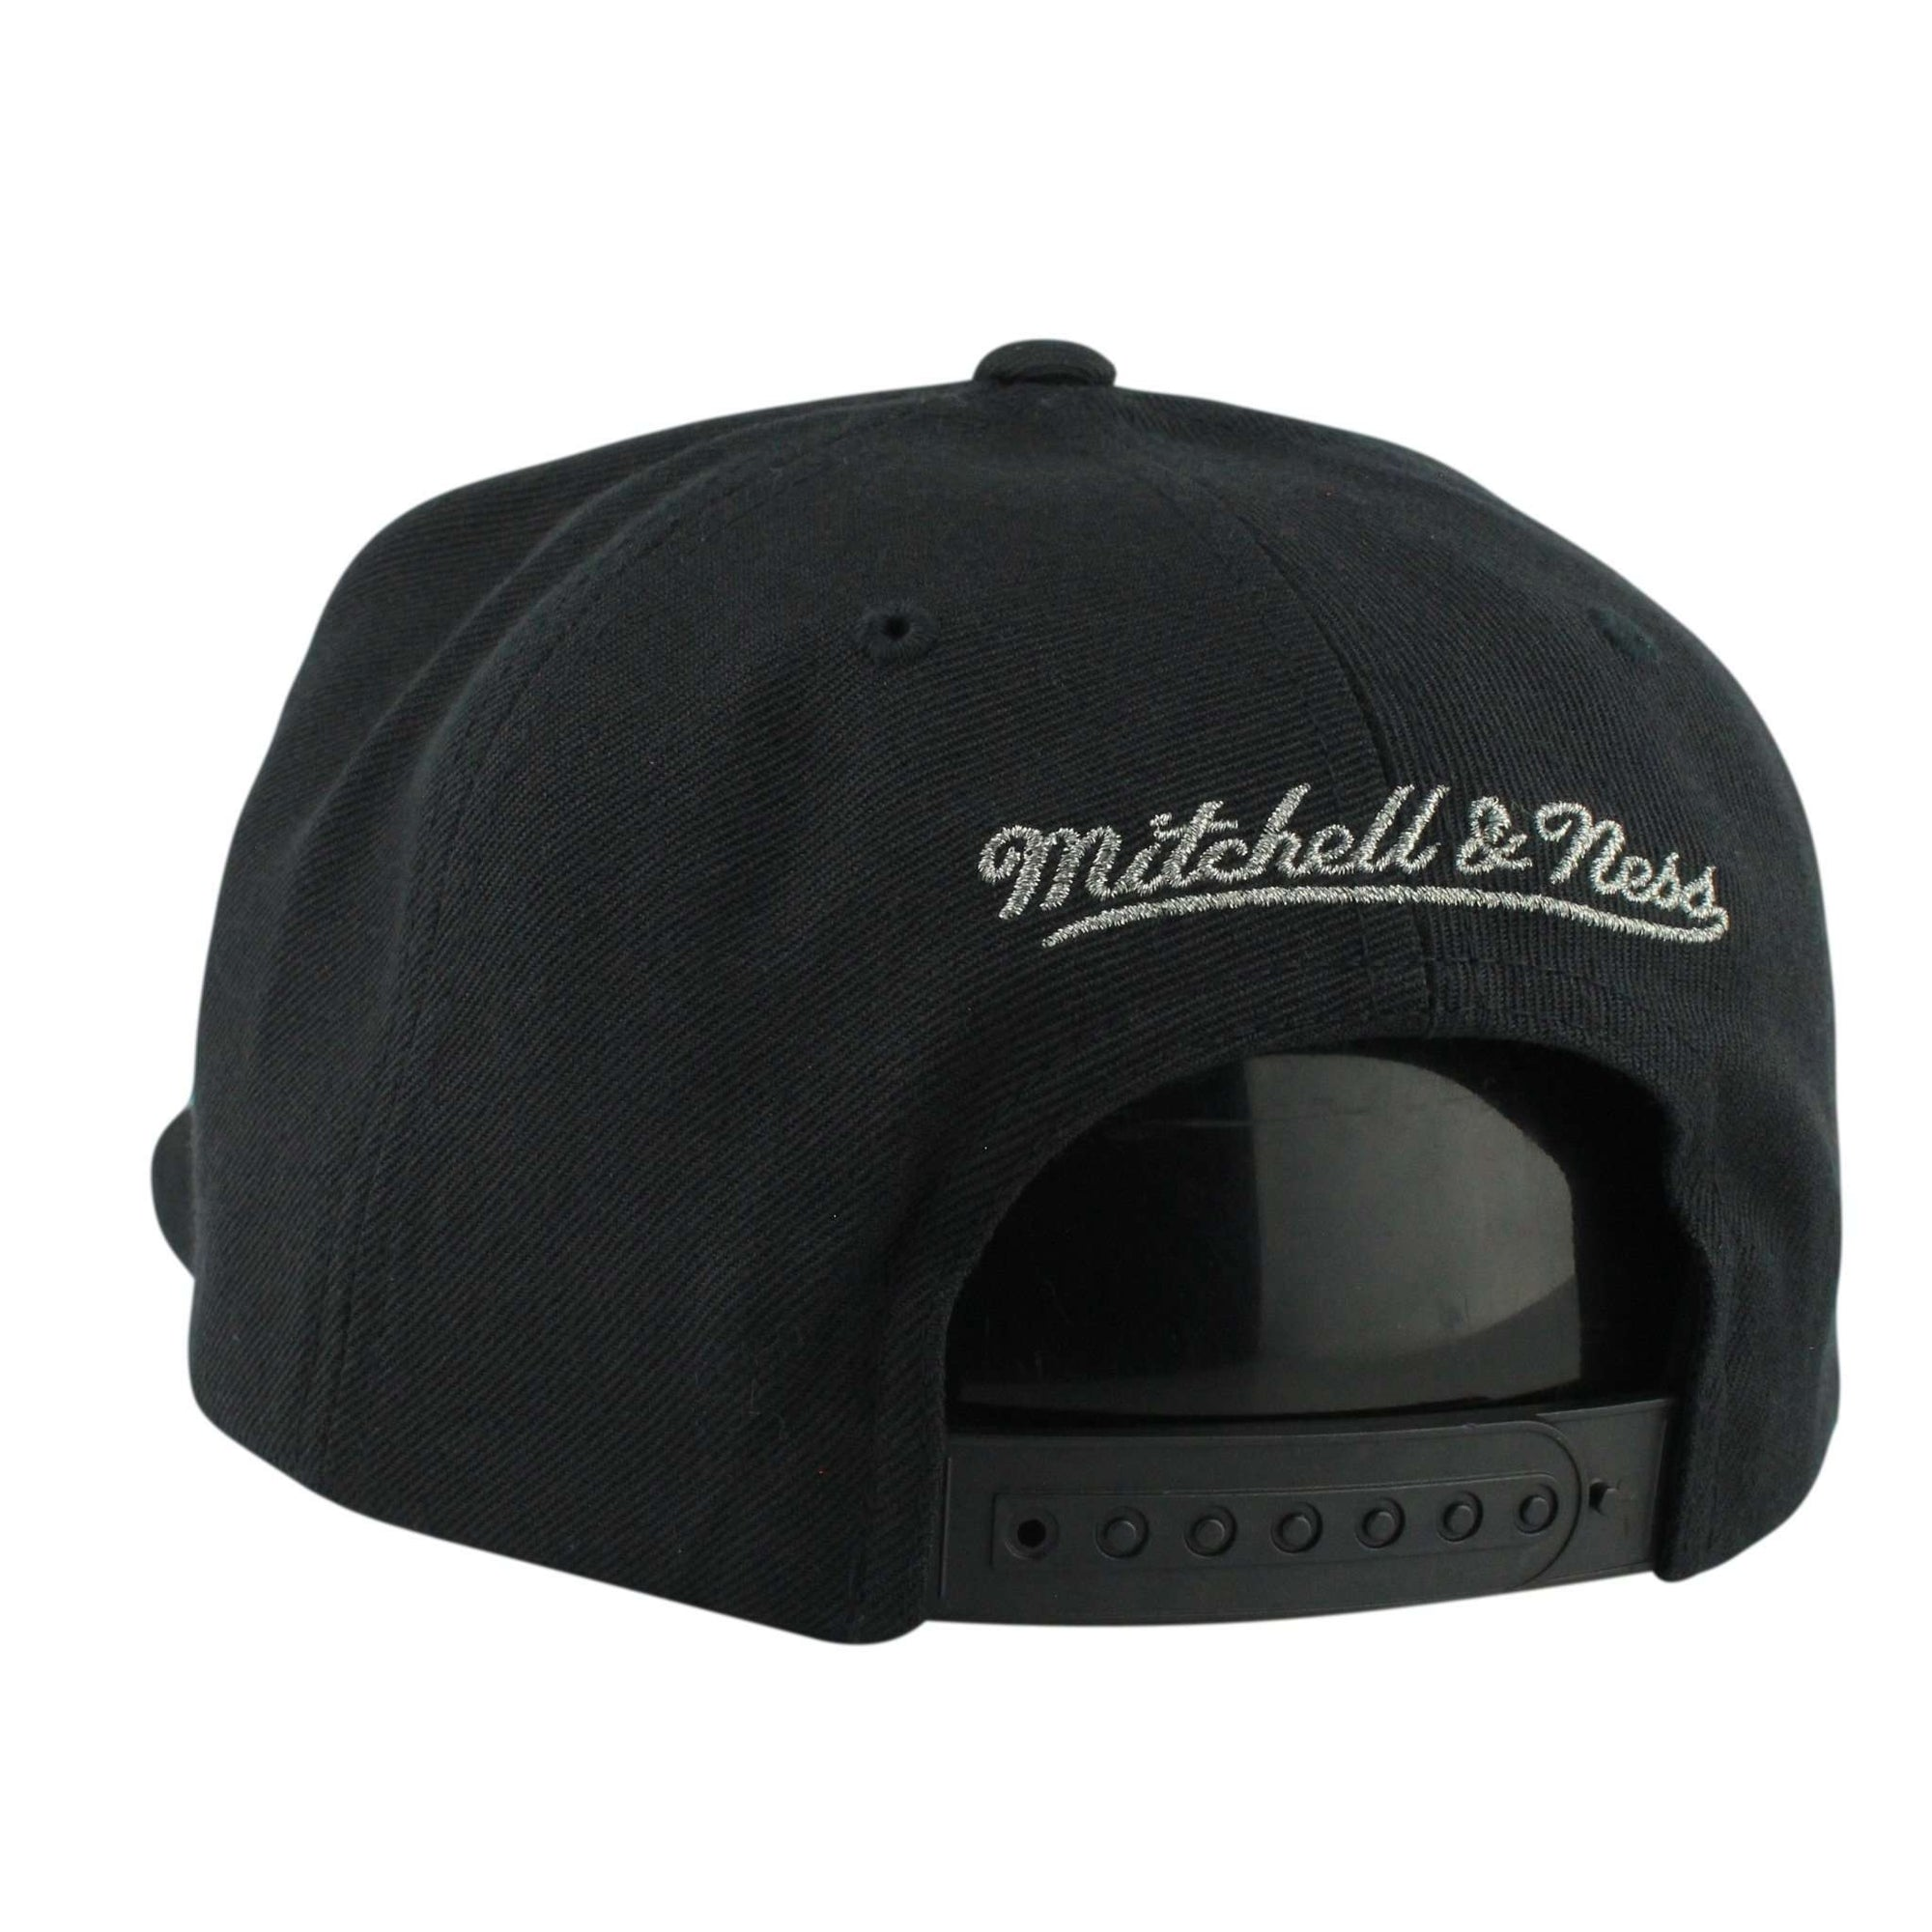 3c2e871a2d7 Mitchell and Ness Cleveland Cavaliers Cropped Metallic Black Black Snapback